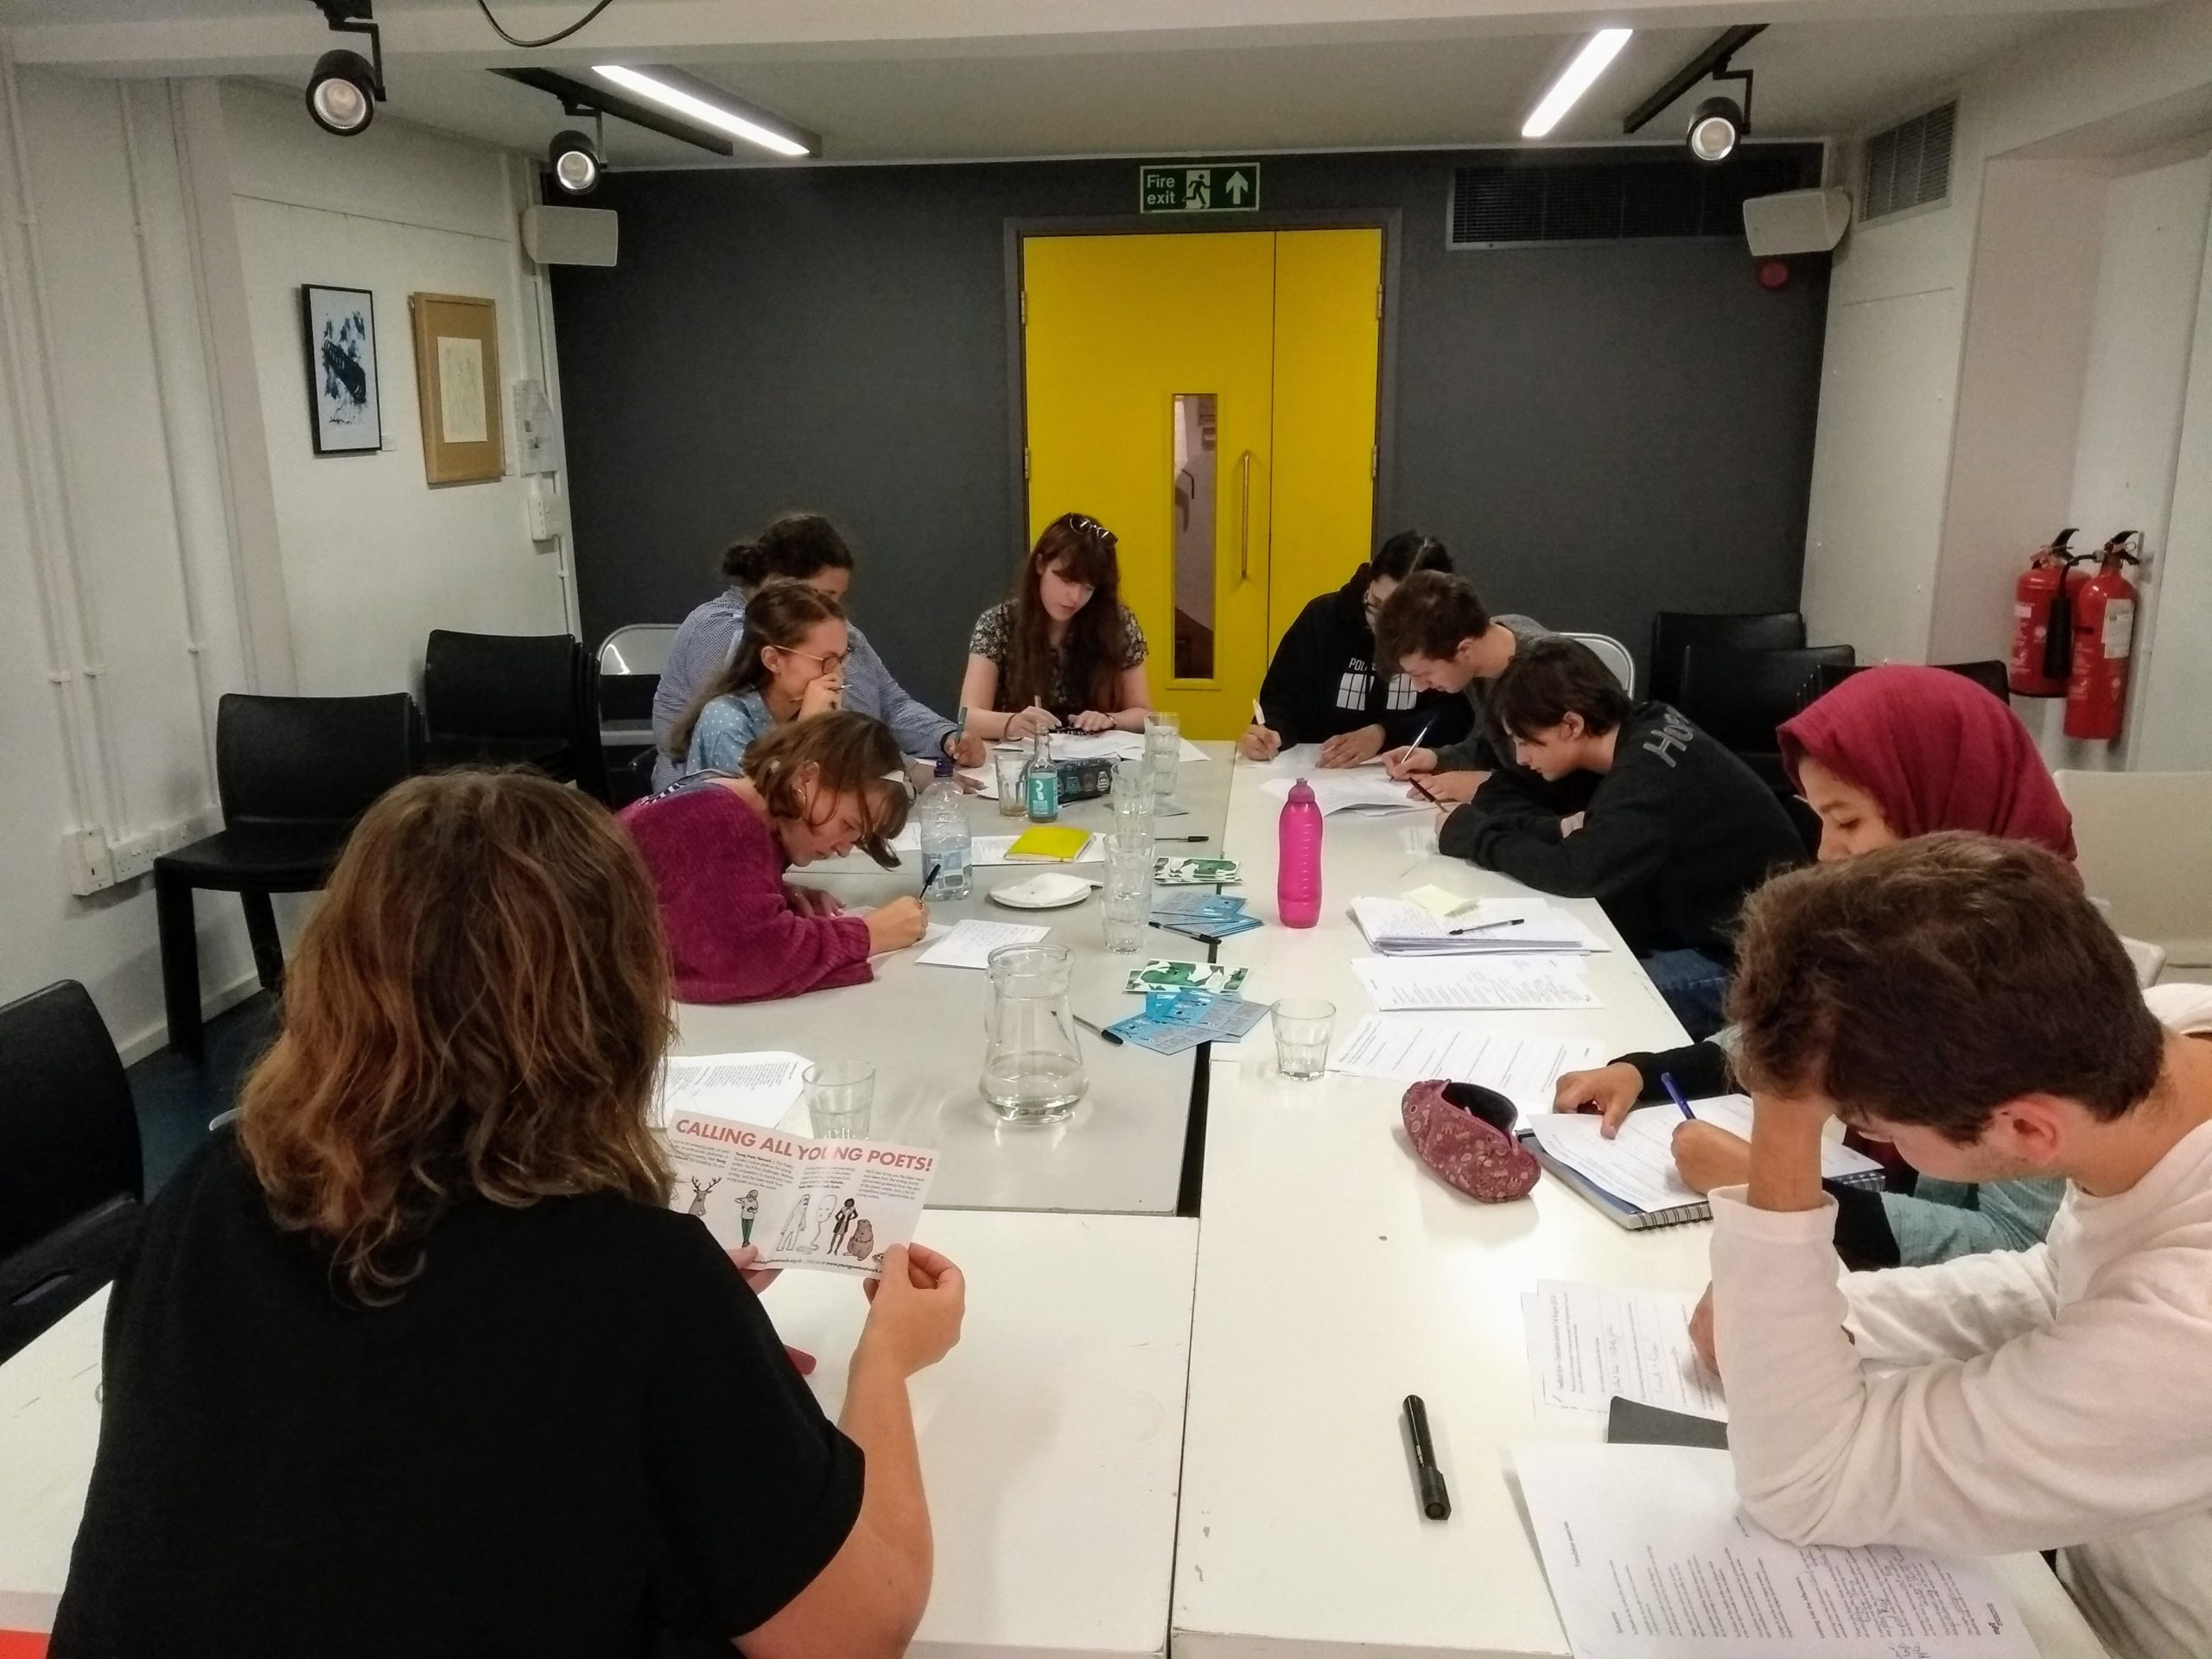 Clare Pollard leading the poetry translation workshop in the basement of The Poetry Café - the group is writing